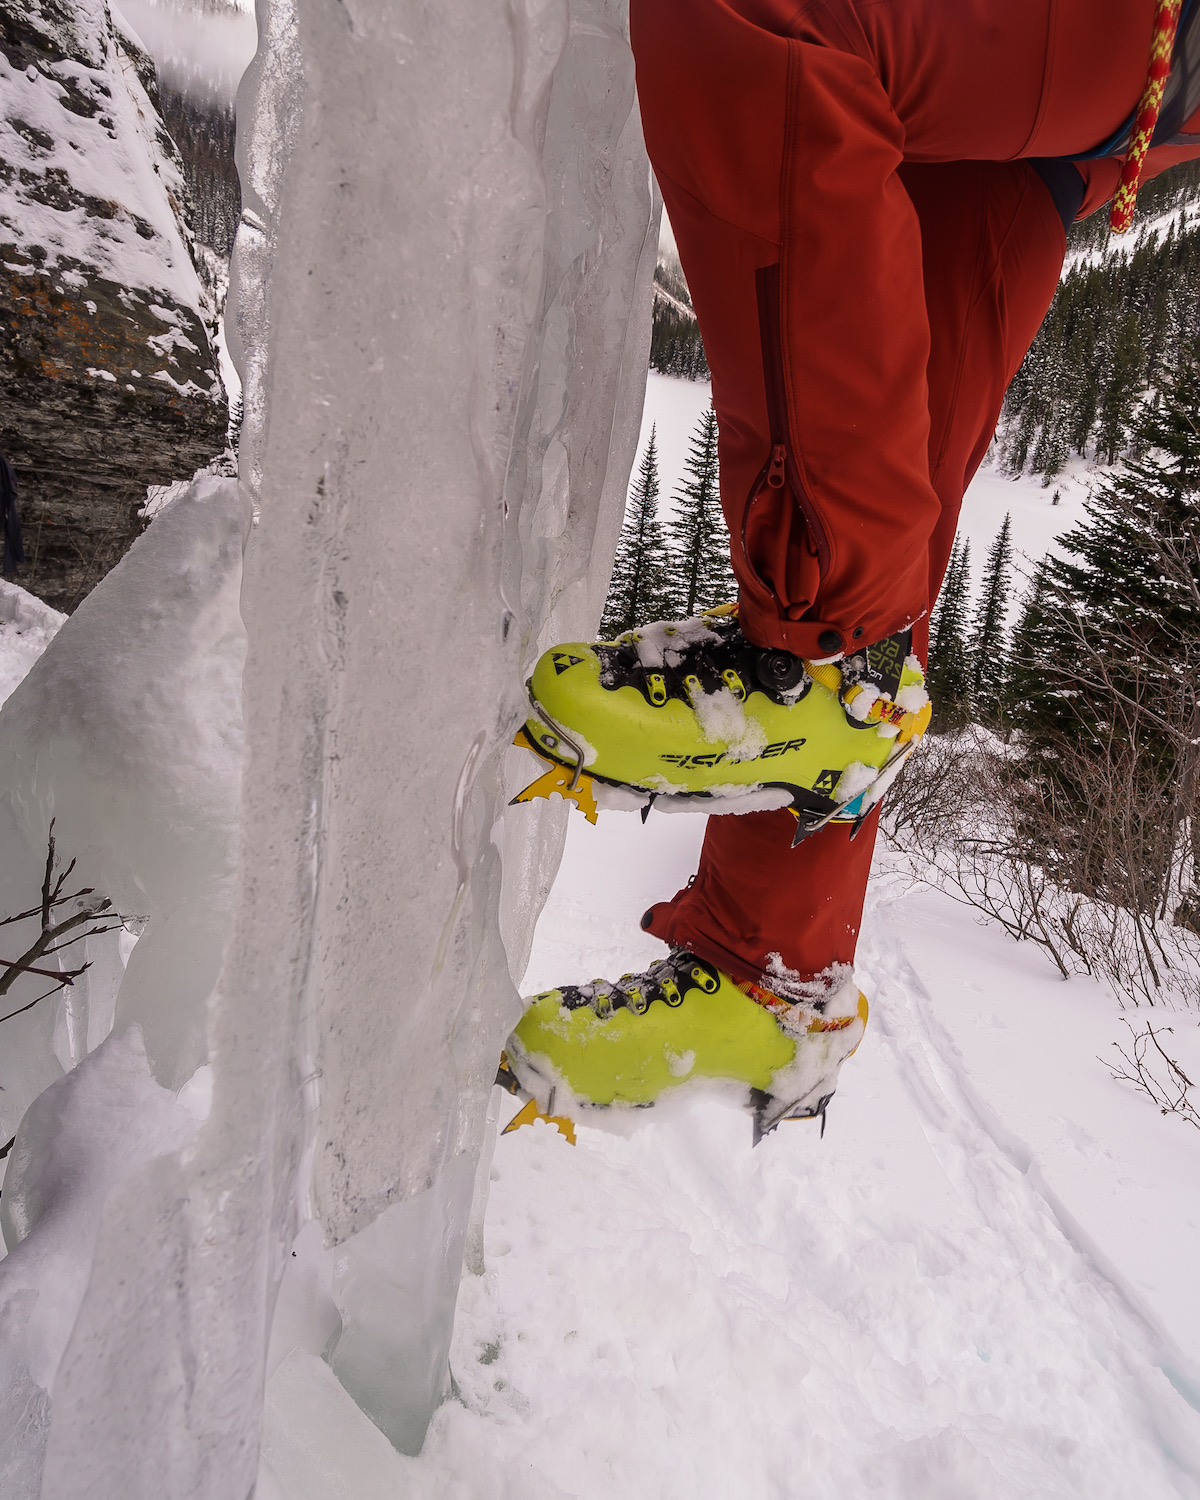 The author kicking ice with the Grivel G20 Plus crampons mounted to his Fischer Travers ski boots, Granite Lake, Cabinet Mountains, Montana. [Photo] Craig Pope